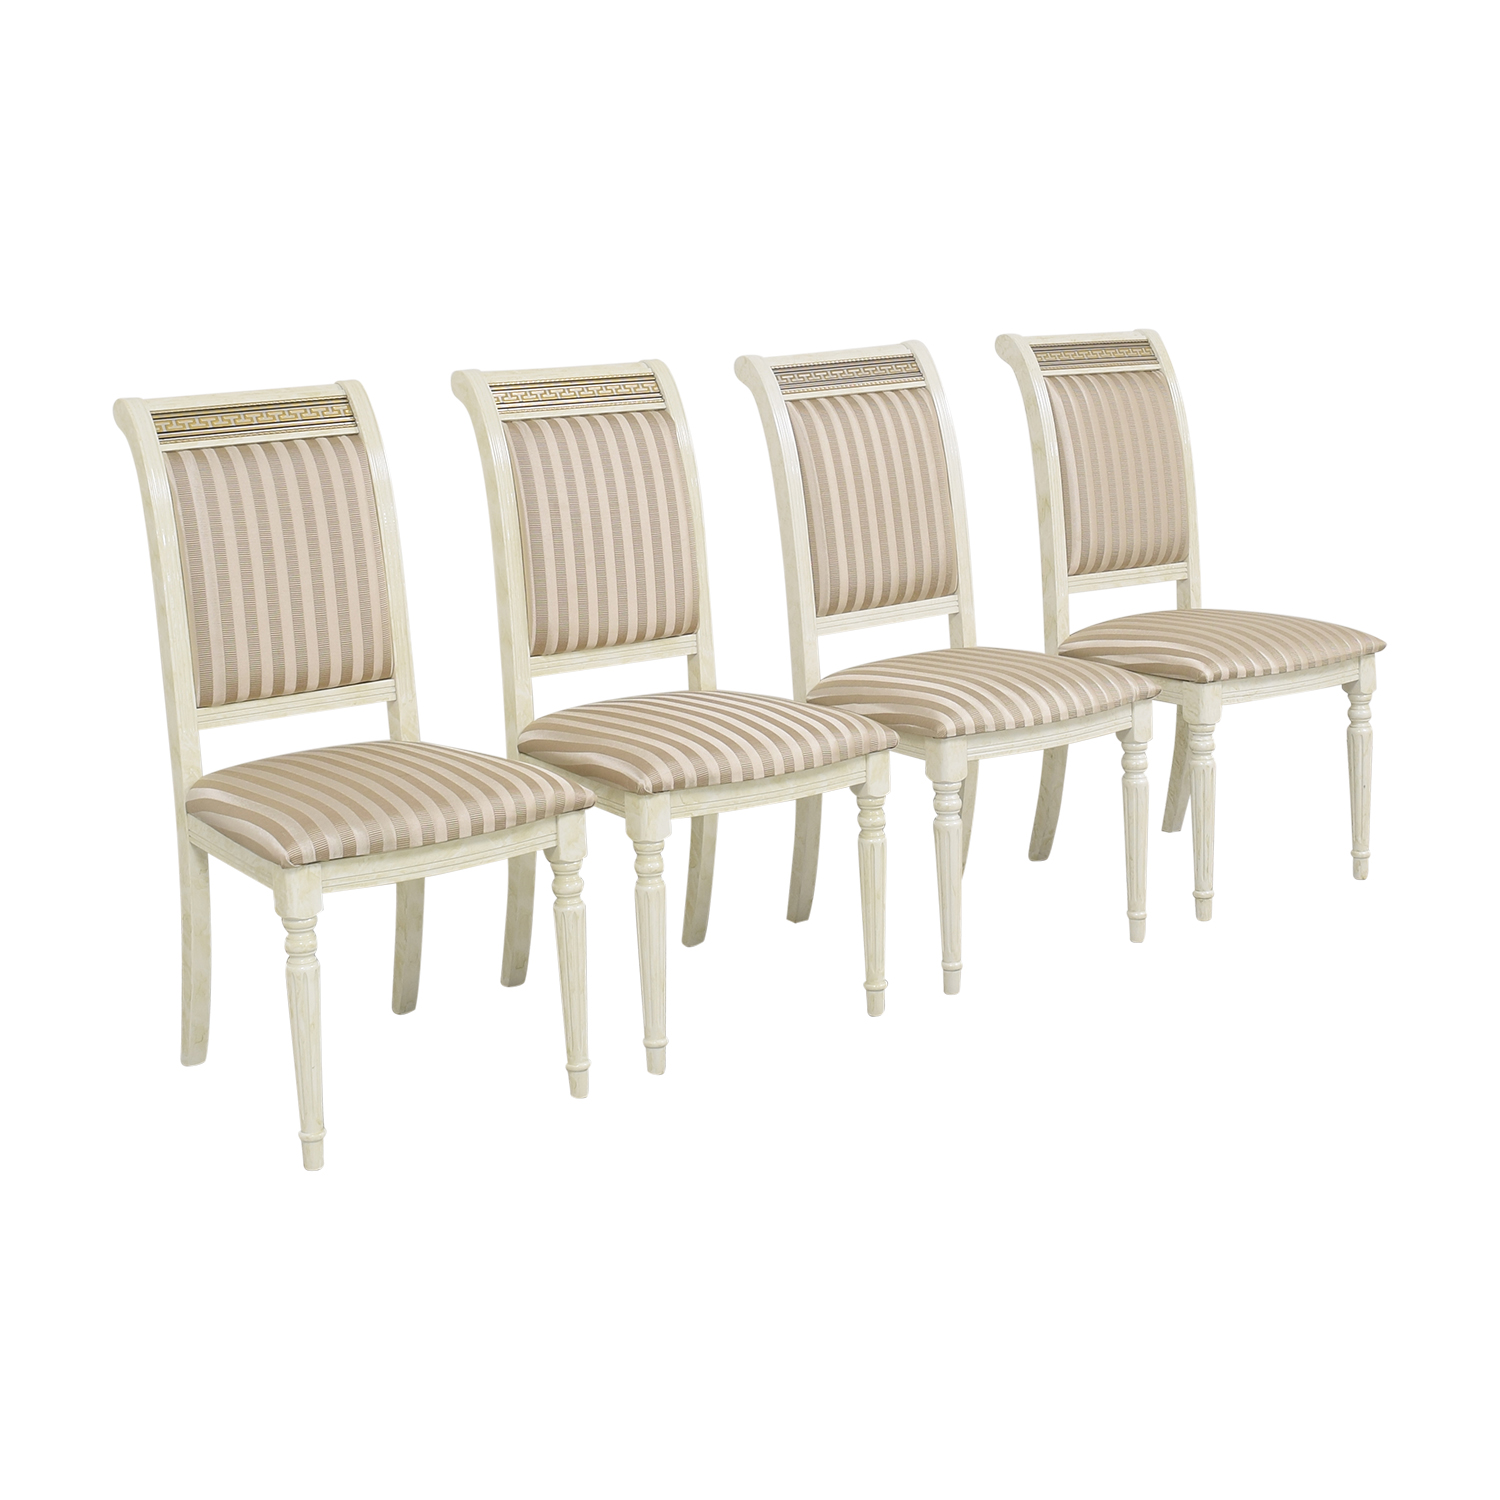 Arredoclassic Arredoclassic Liberty Dining Chairs ct